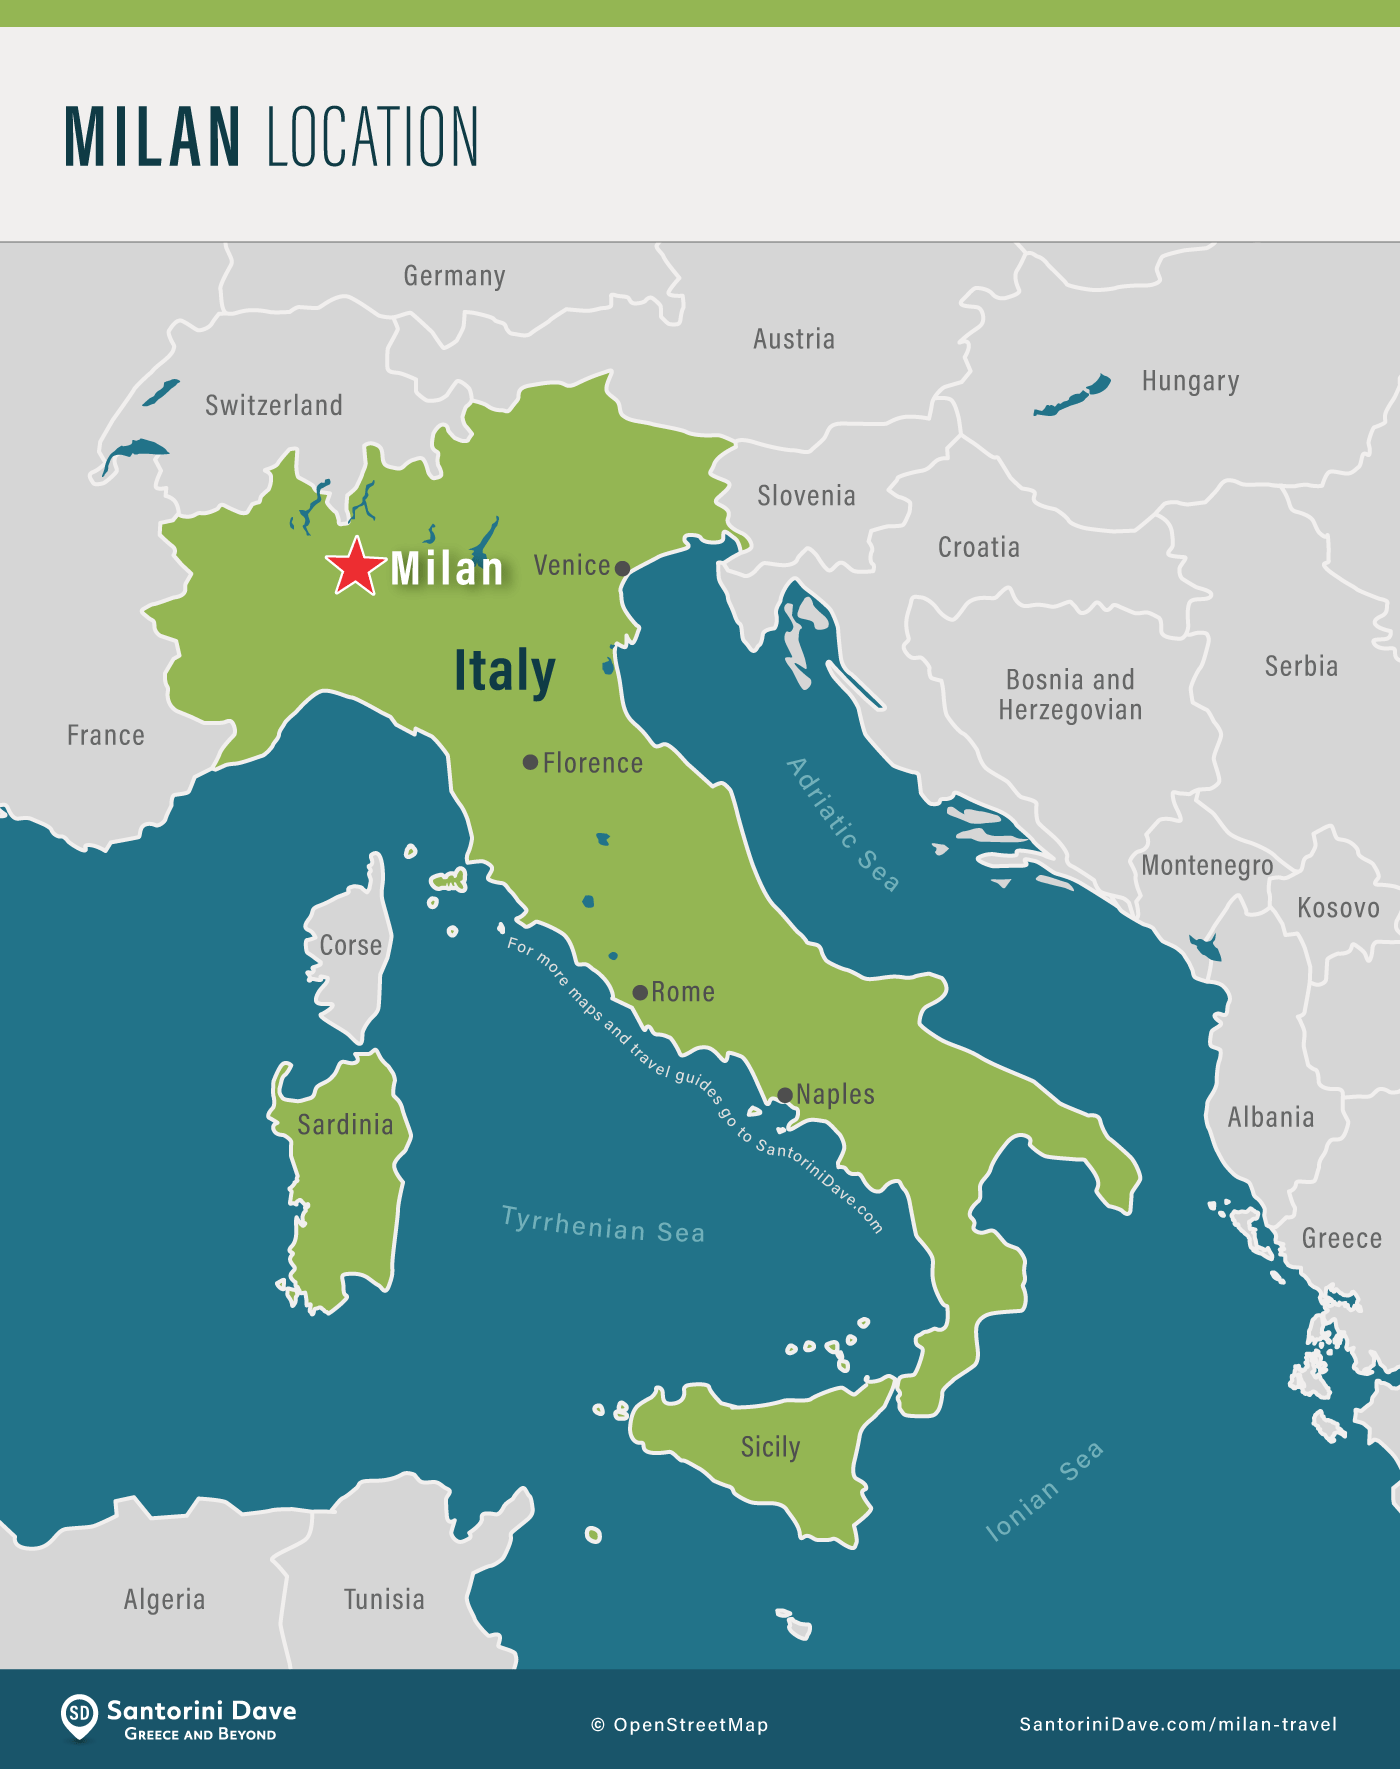 Map showing the city of Milan's location within Italy